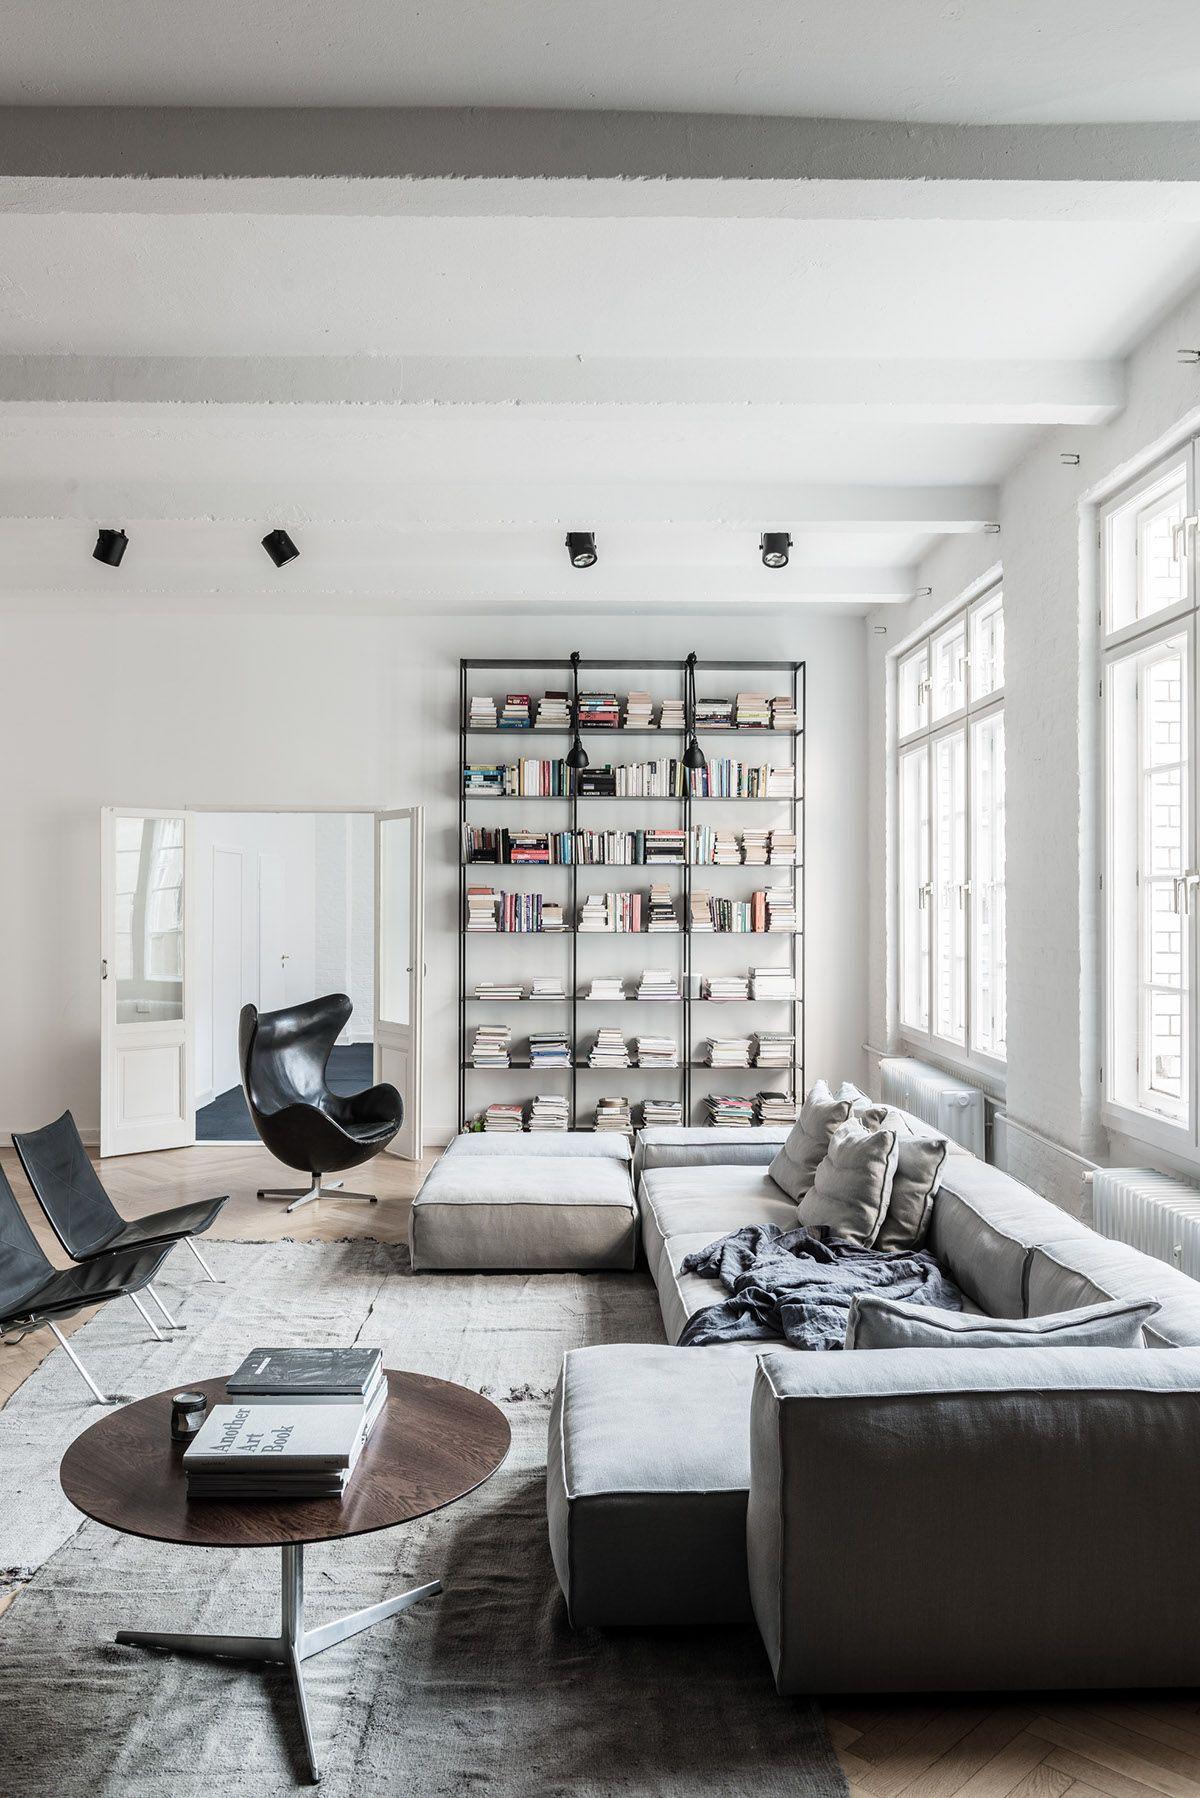 A couple of weeks ago i introduced you to berlin based interior designer and stylist annabell kutucu with this beautiful home knowing i would be returning